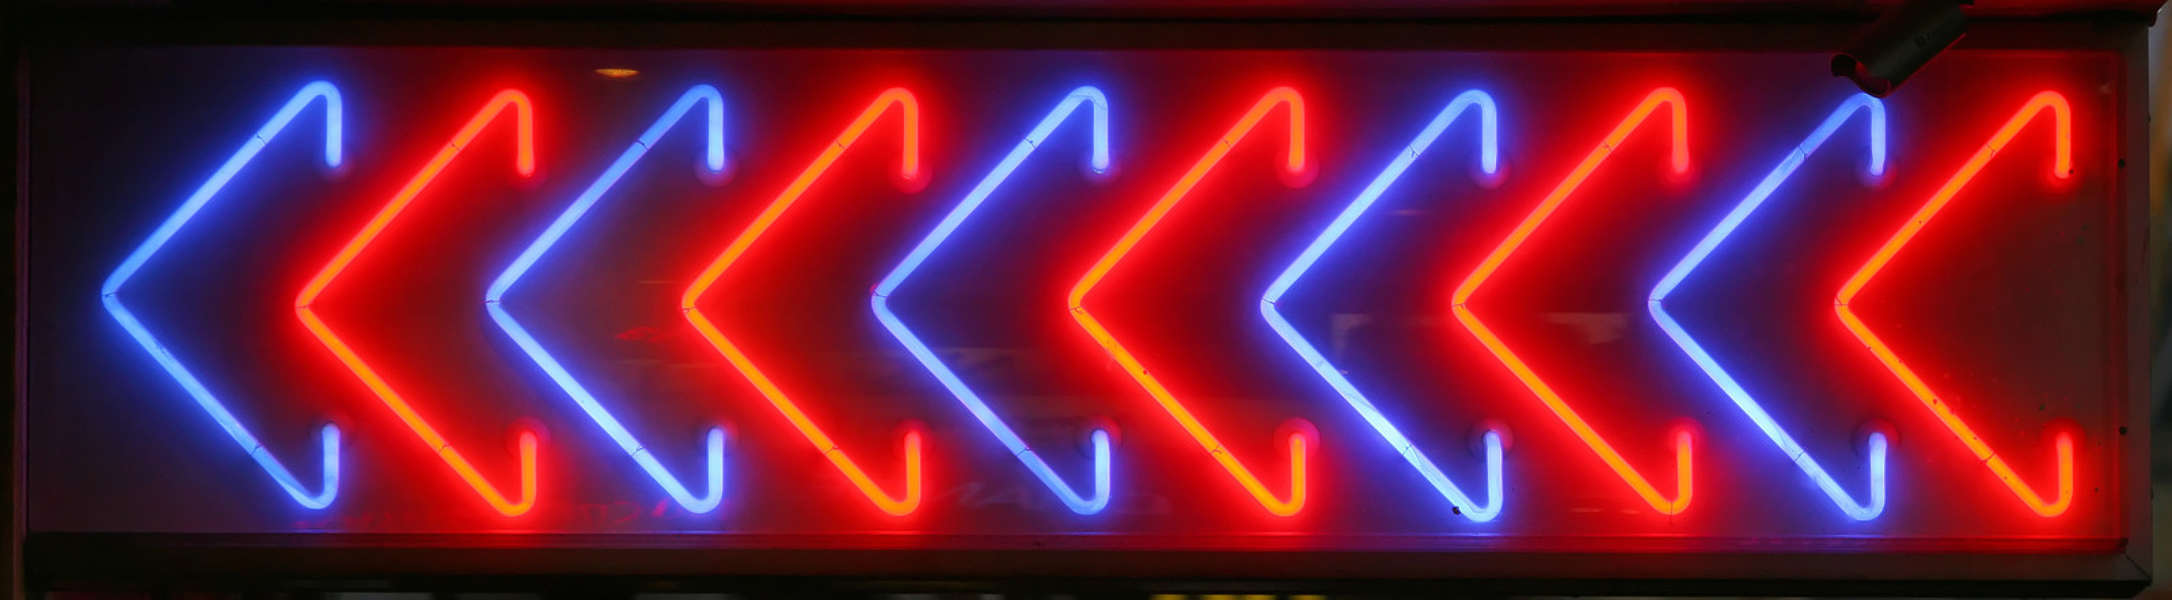 Signsneon0037 Free Background Texture Sign Neon Arrow